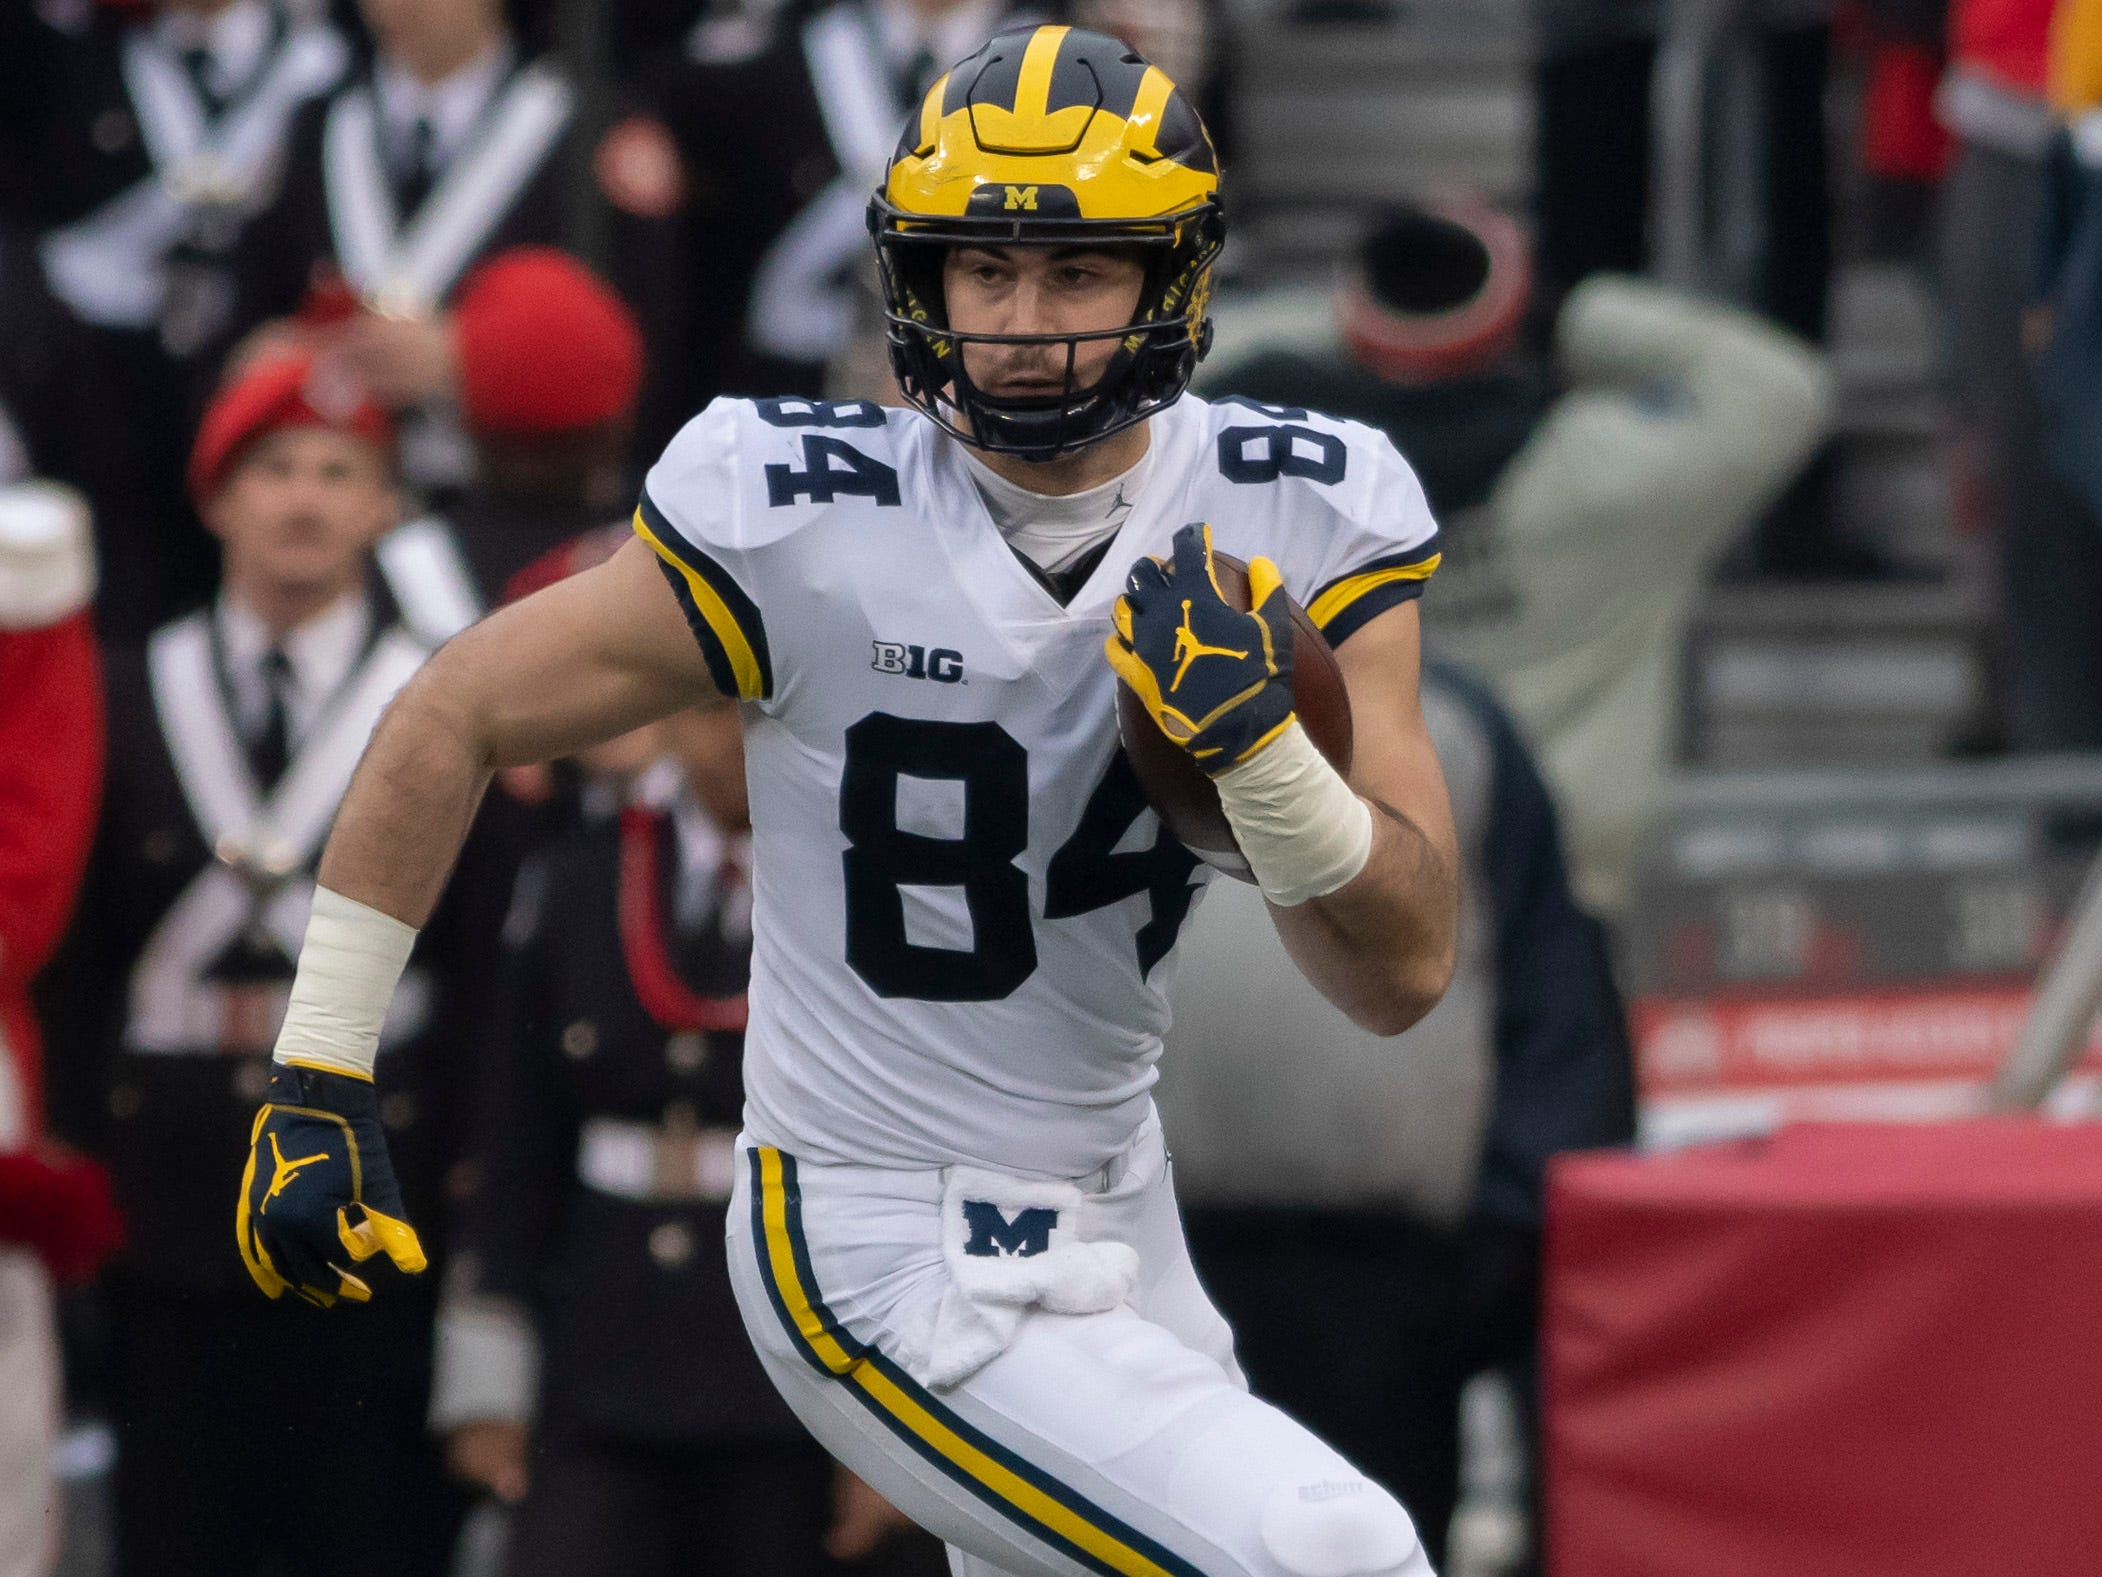 TIGHT END: Sean McKeon – He was All-Big Ten honorable mention last season. He has made 16 career starts and last season had 14 catches for 122 yards and a touchdown.